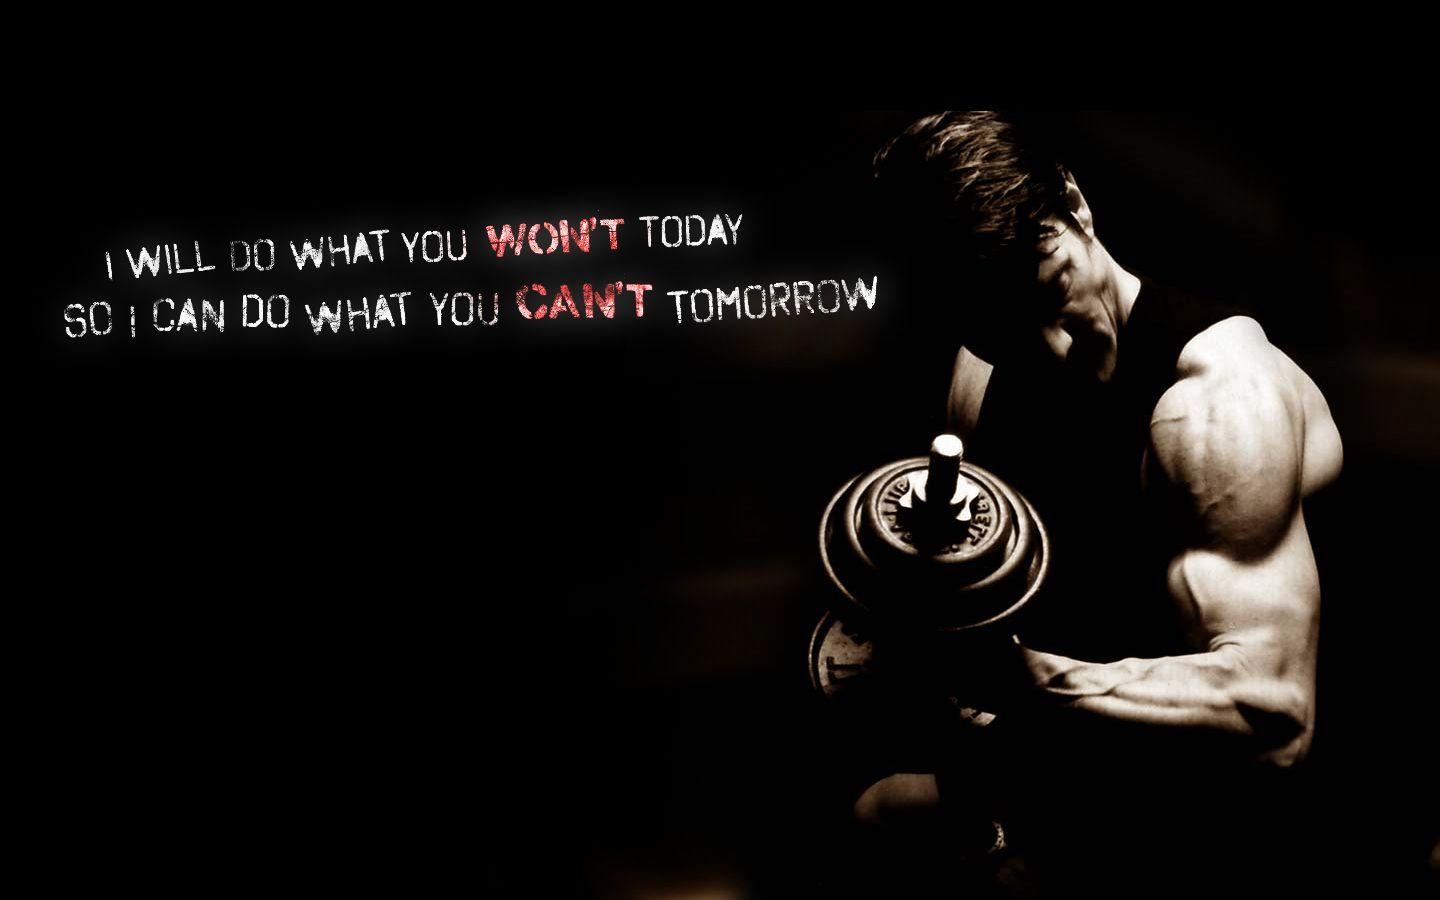 Gym Workout Wallpapers